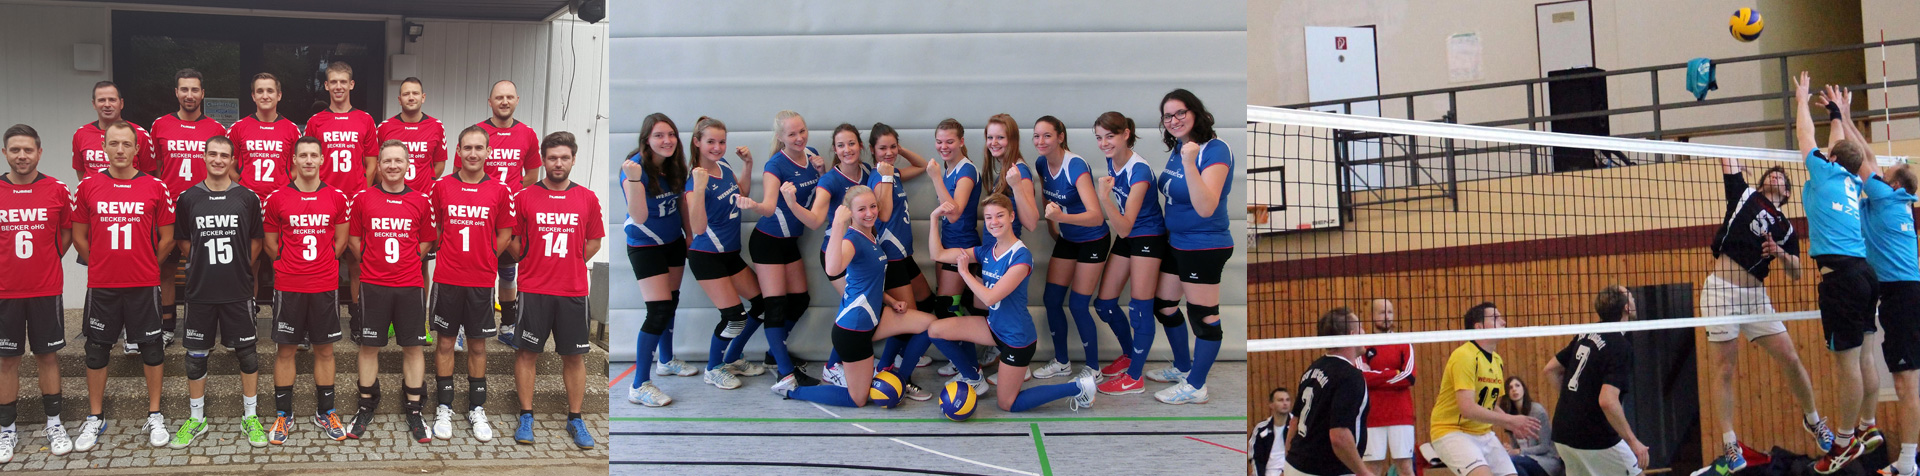 Volleyball SG Ubstadt / Forst